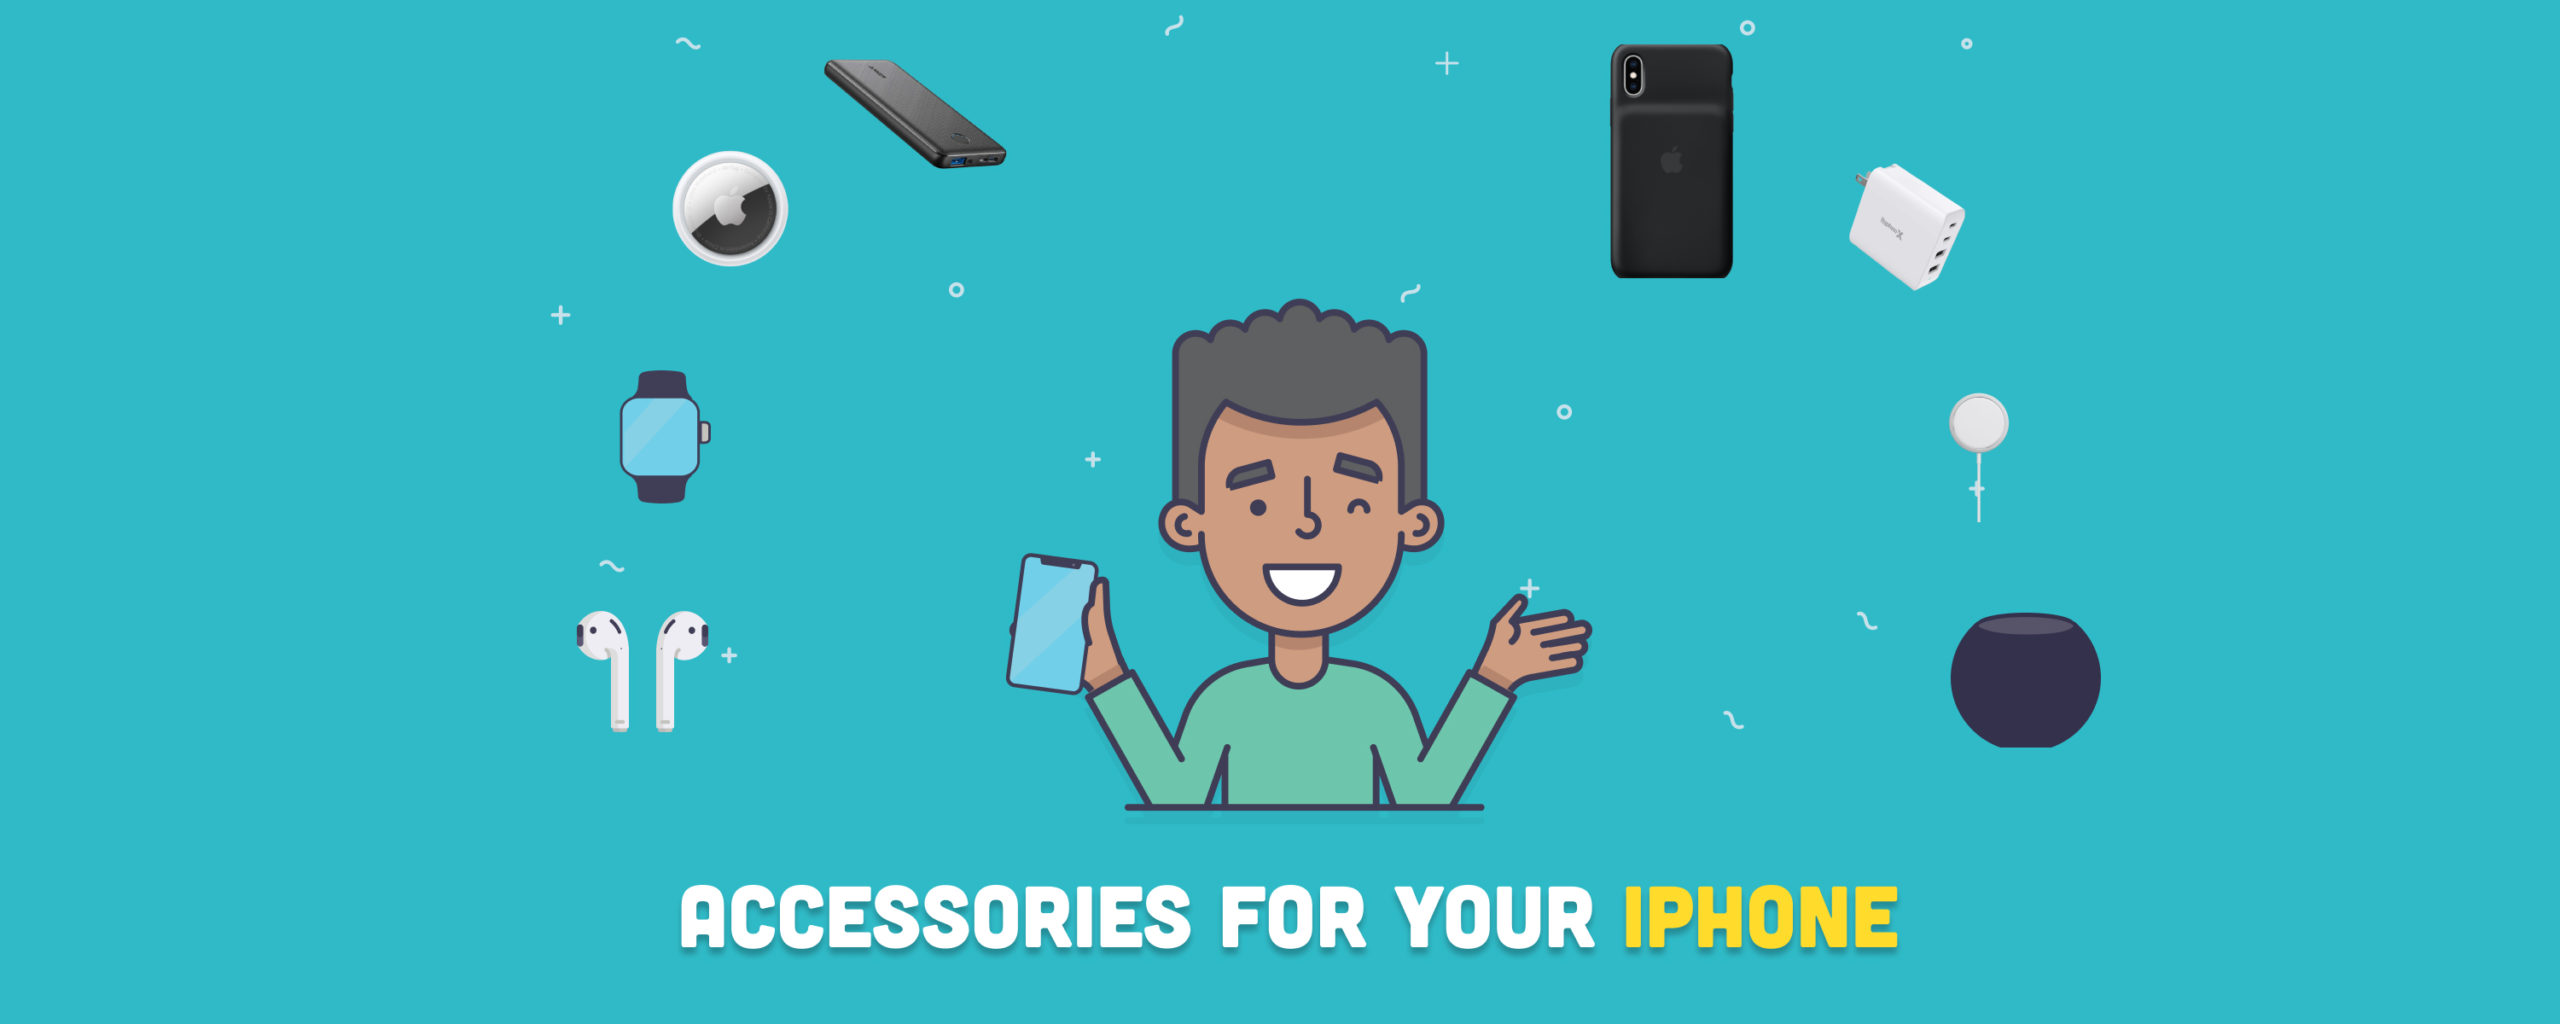 9 Useful iPhone Accessories for your needs in 2021